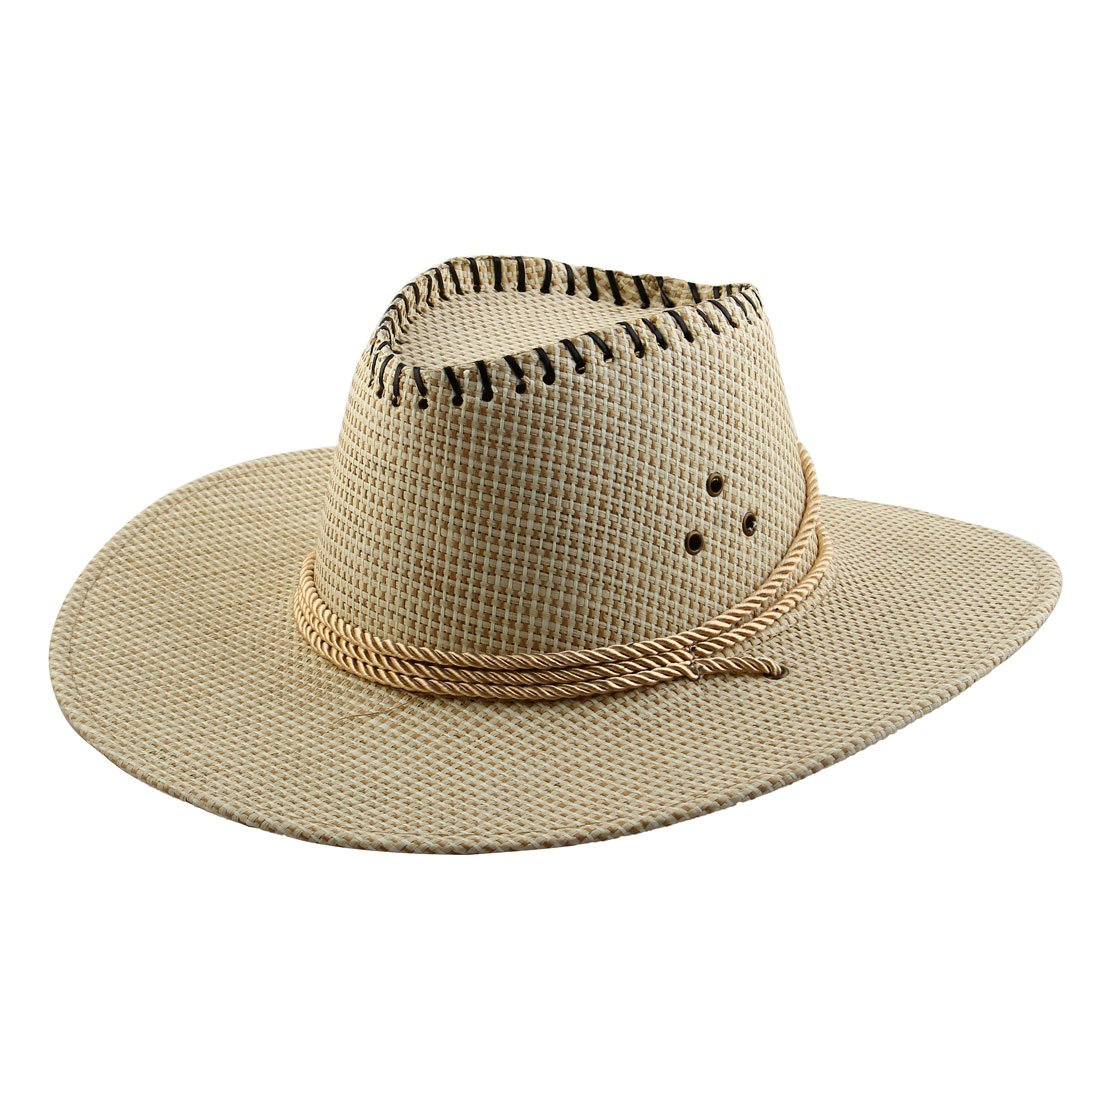 0ed1c2e3977 Amazon.com  uxcell Men Summer Outdoor Adjustable Strap Braided Wide Brim  Western Style Sunhat Cowboy Hat White  Toys   Games